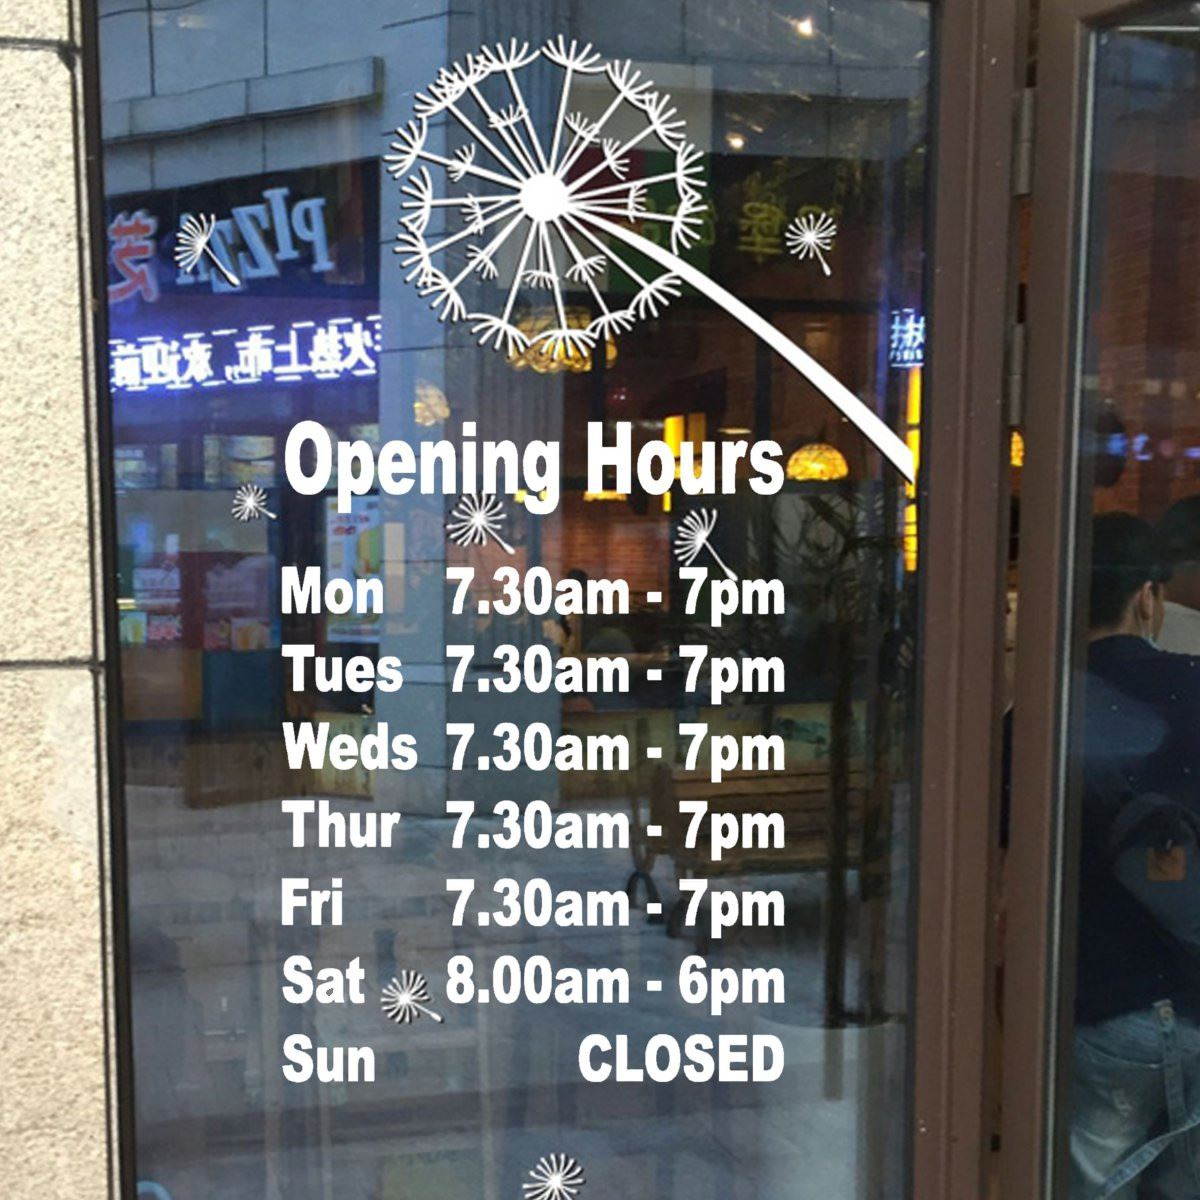 Market opening hours